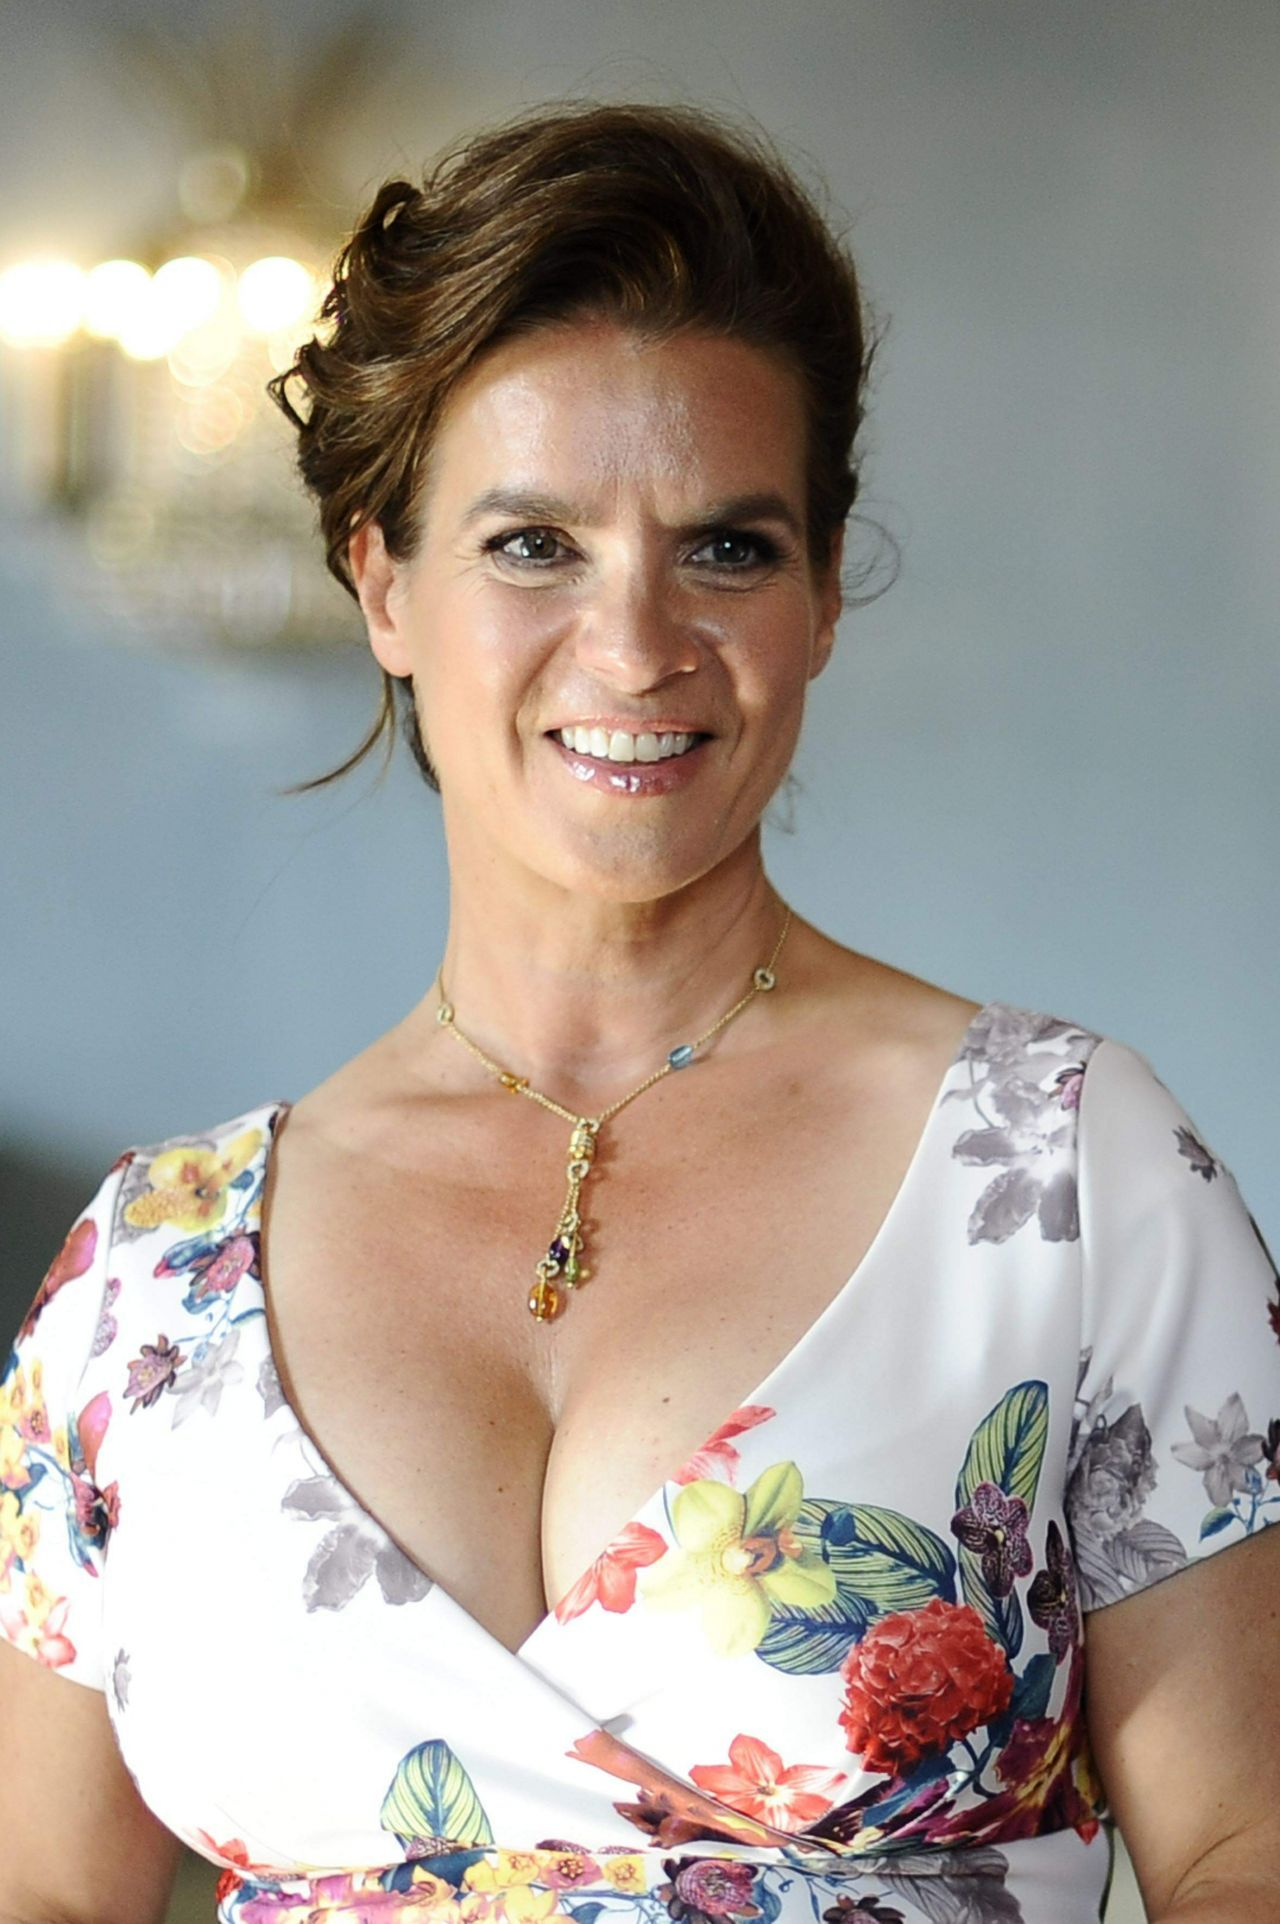 Katarina Witt earned a  million dollar salary, leaving the net worth at 75 million in 2017